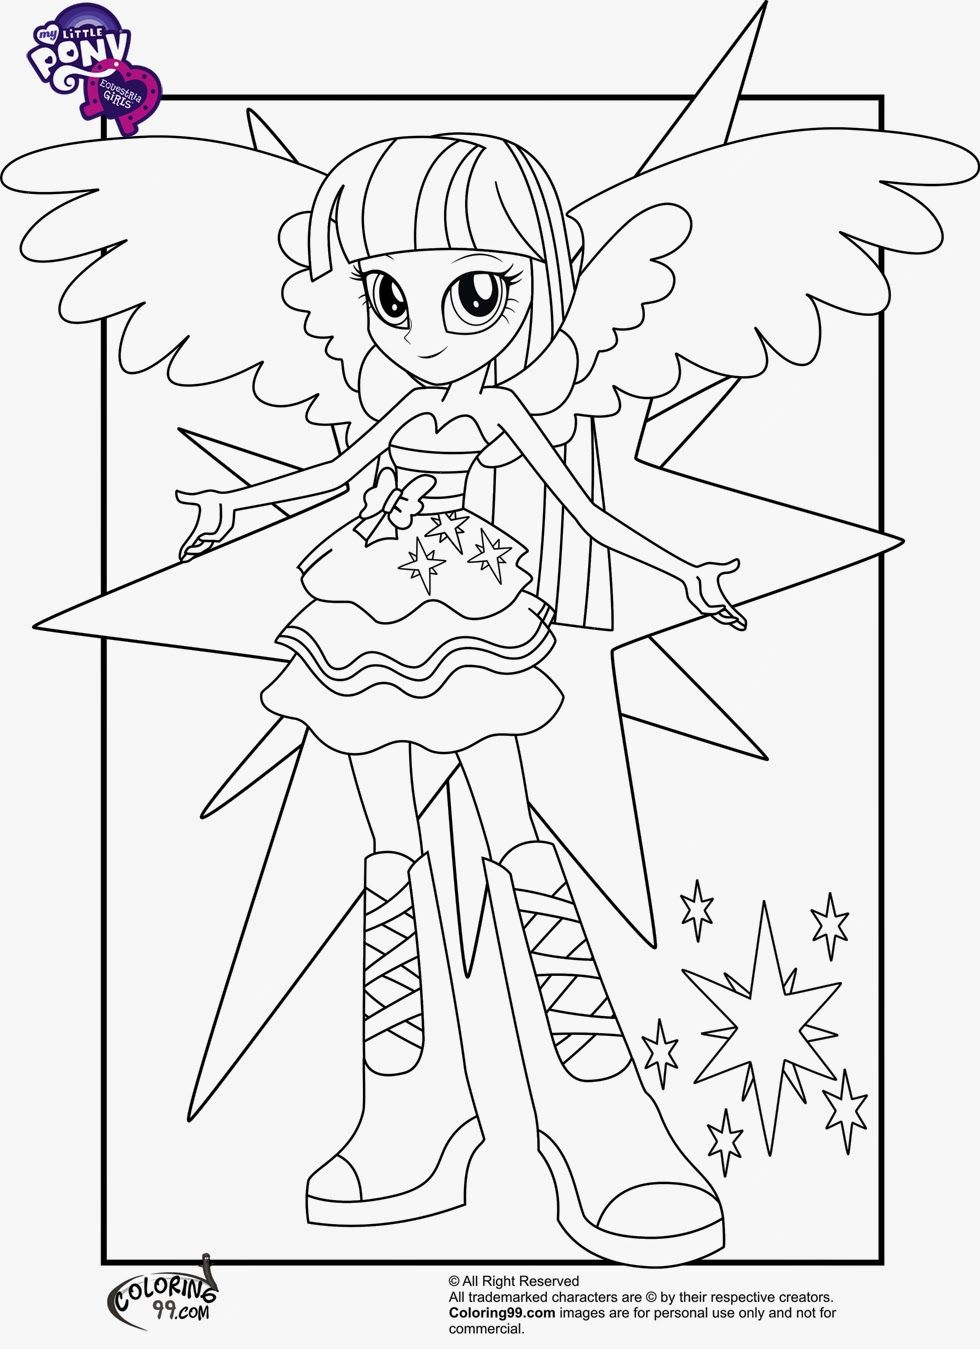 my little pony equestria girls coloring pages - My Little Pony Equestria Girl Coloring Pages